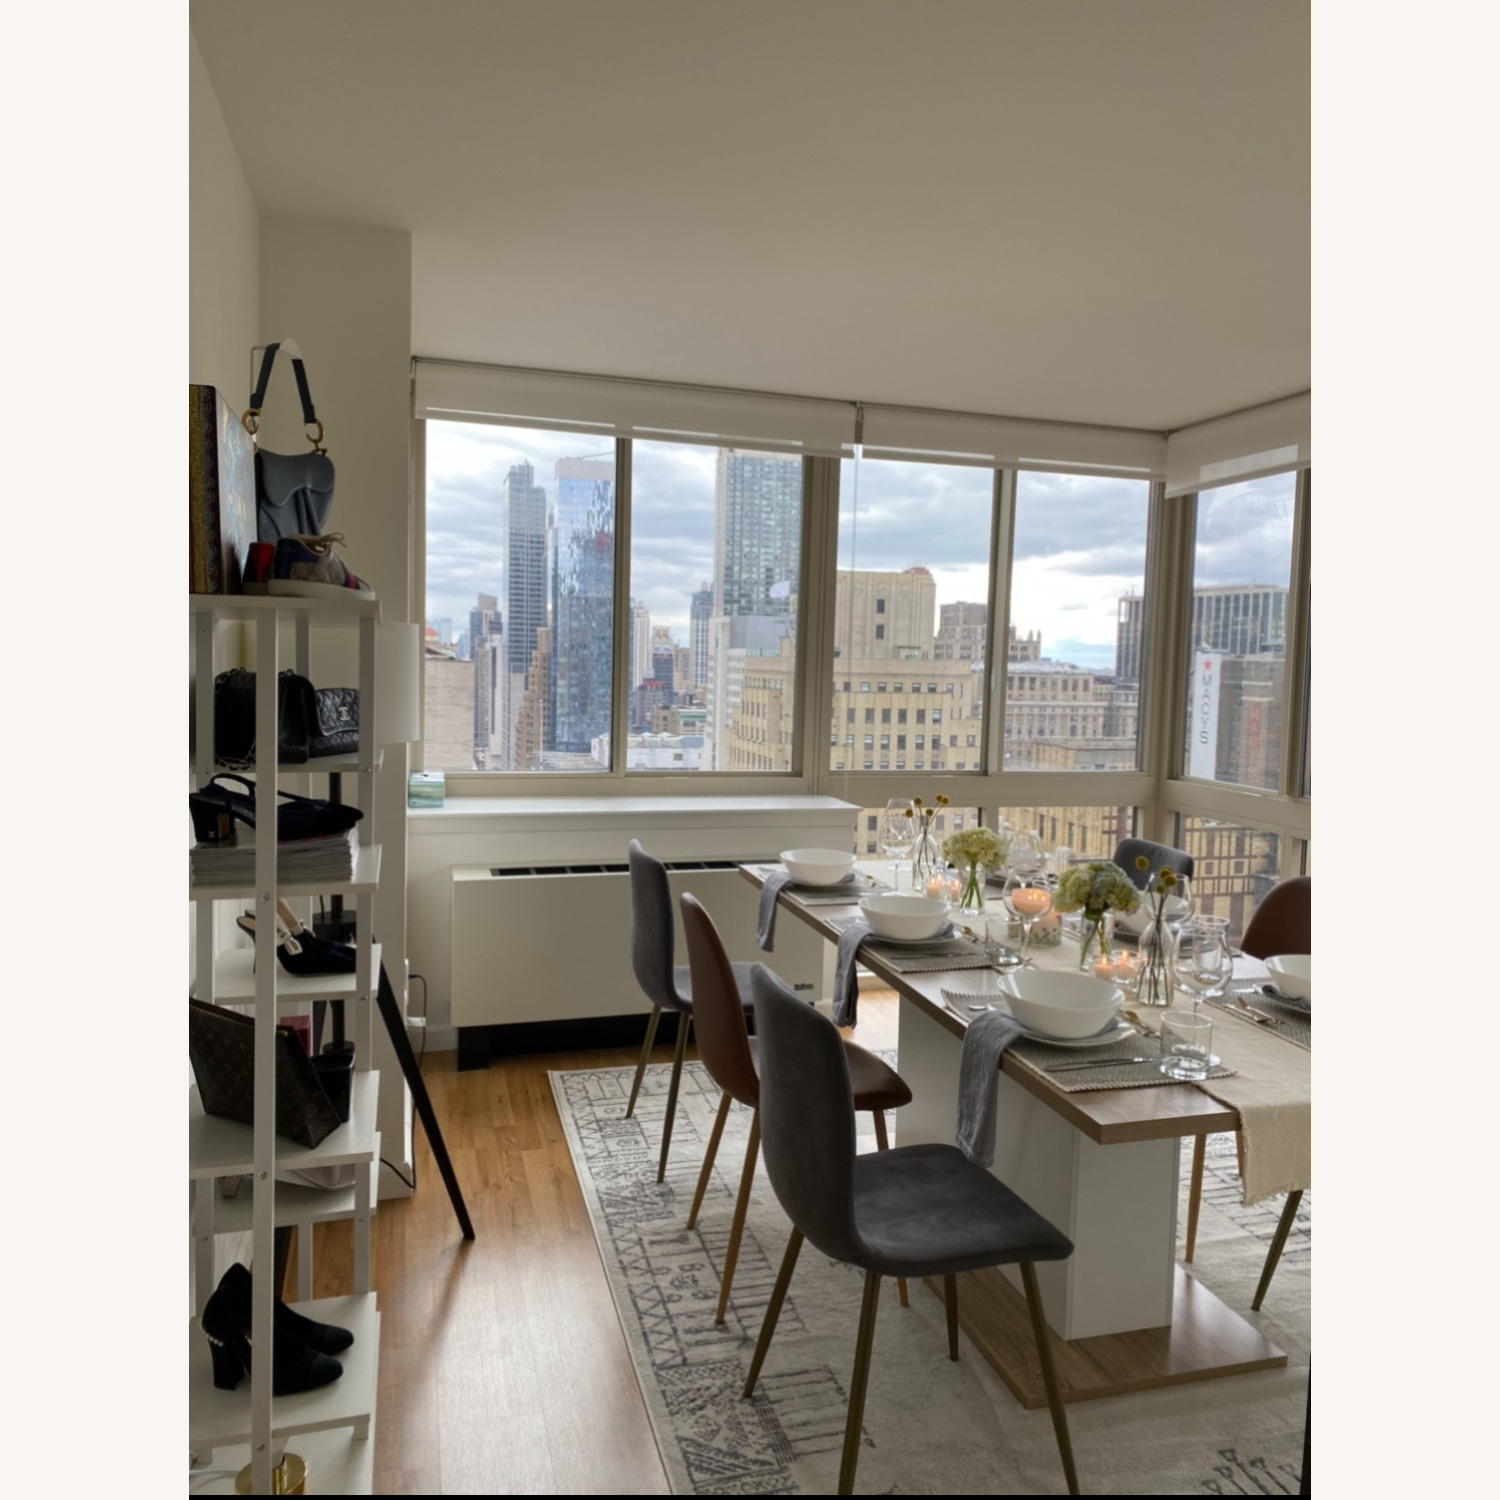 Wayfair Extendable Dining Table (seats up to 8) - image-1